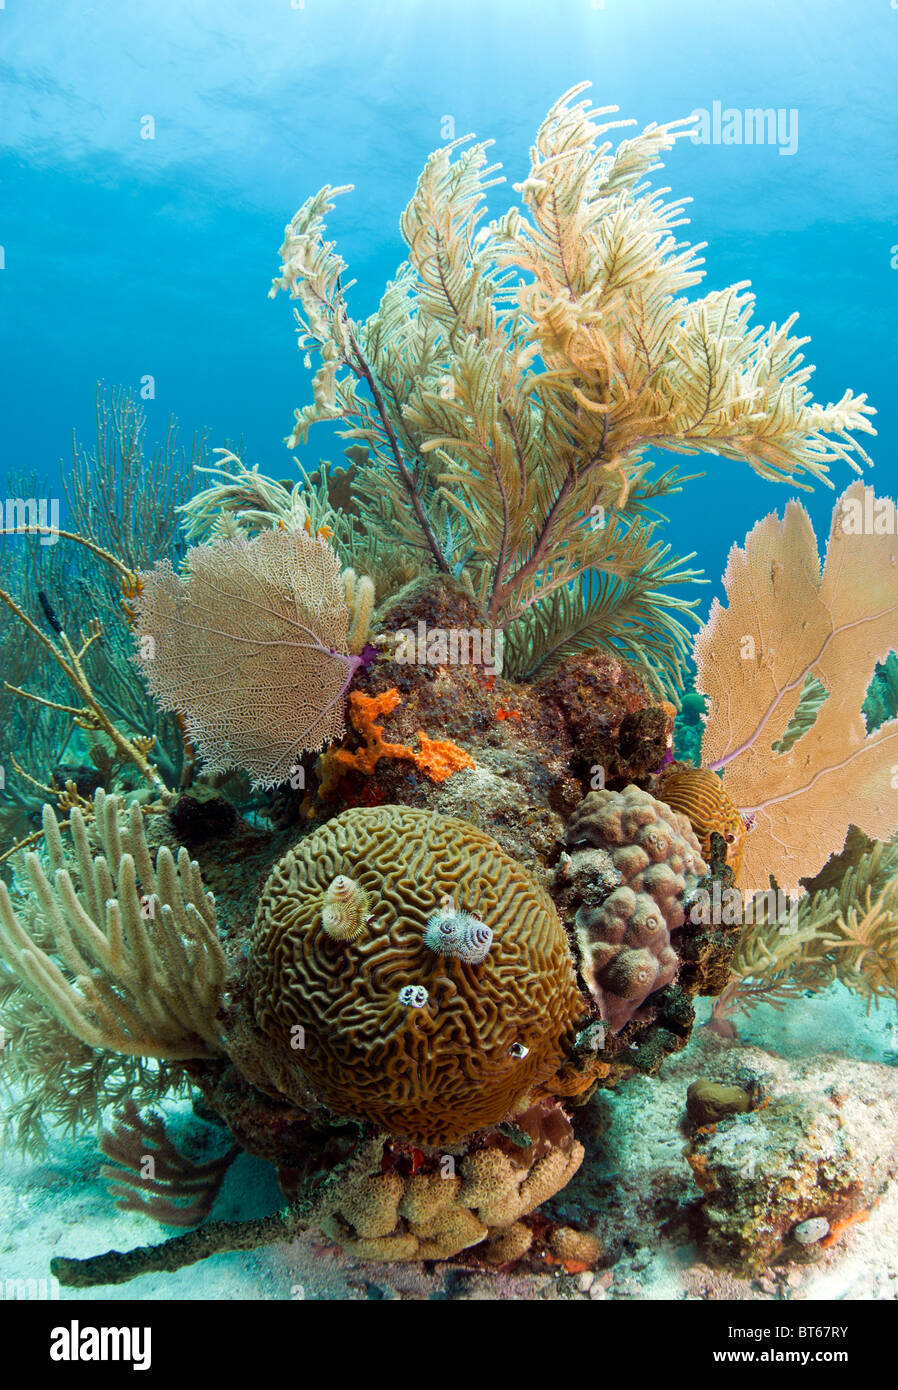 Coral reef off the coast of Roatan Honduras with brain coral and christmas tree worms - Stock Image